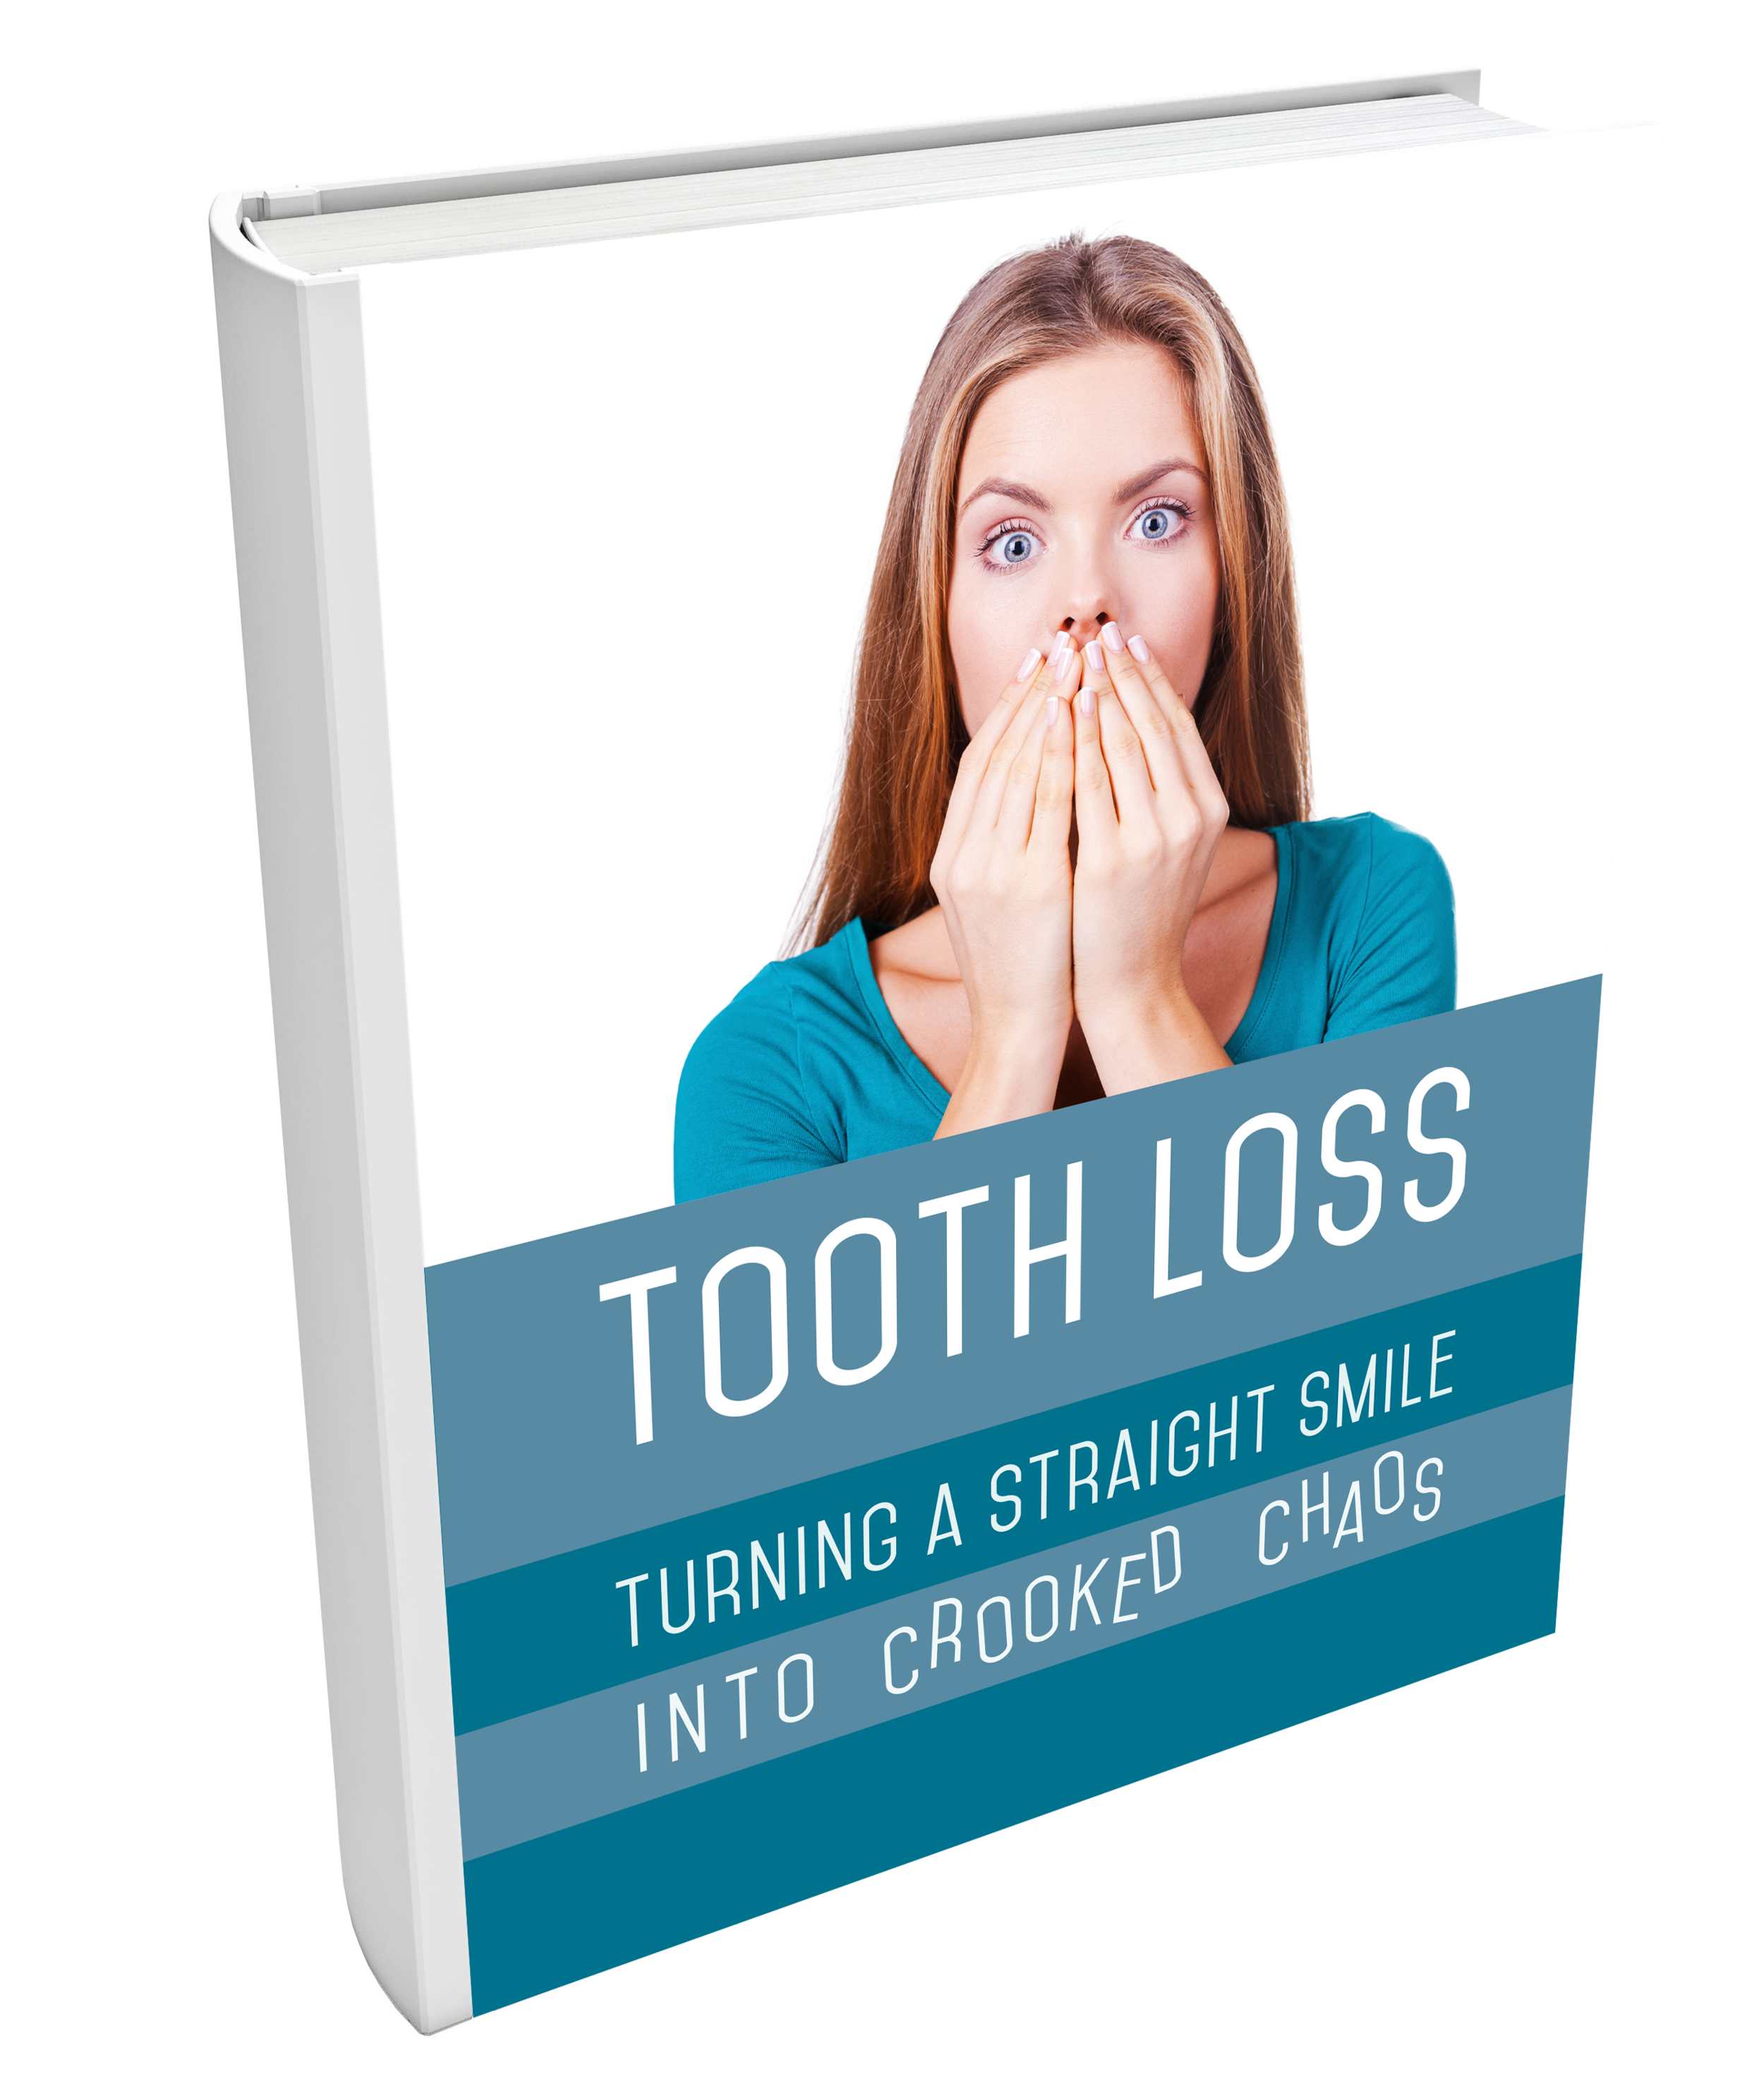 turning-a-straight-smile—into-crooked-chaos-ebook.png